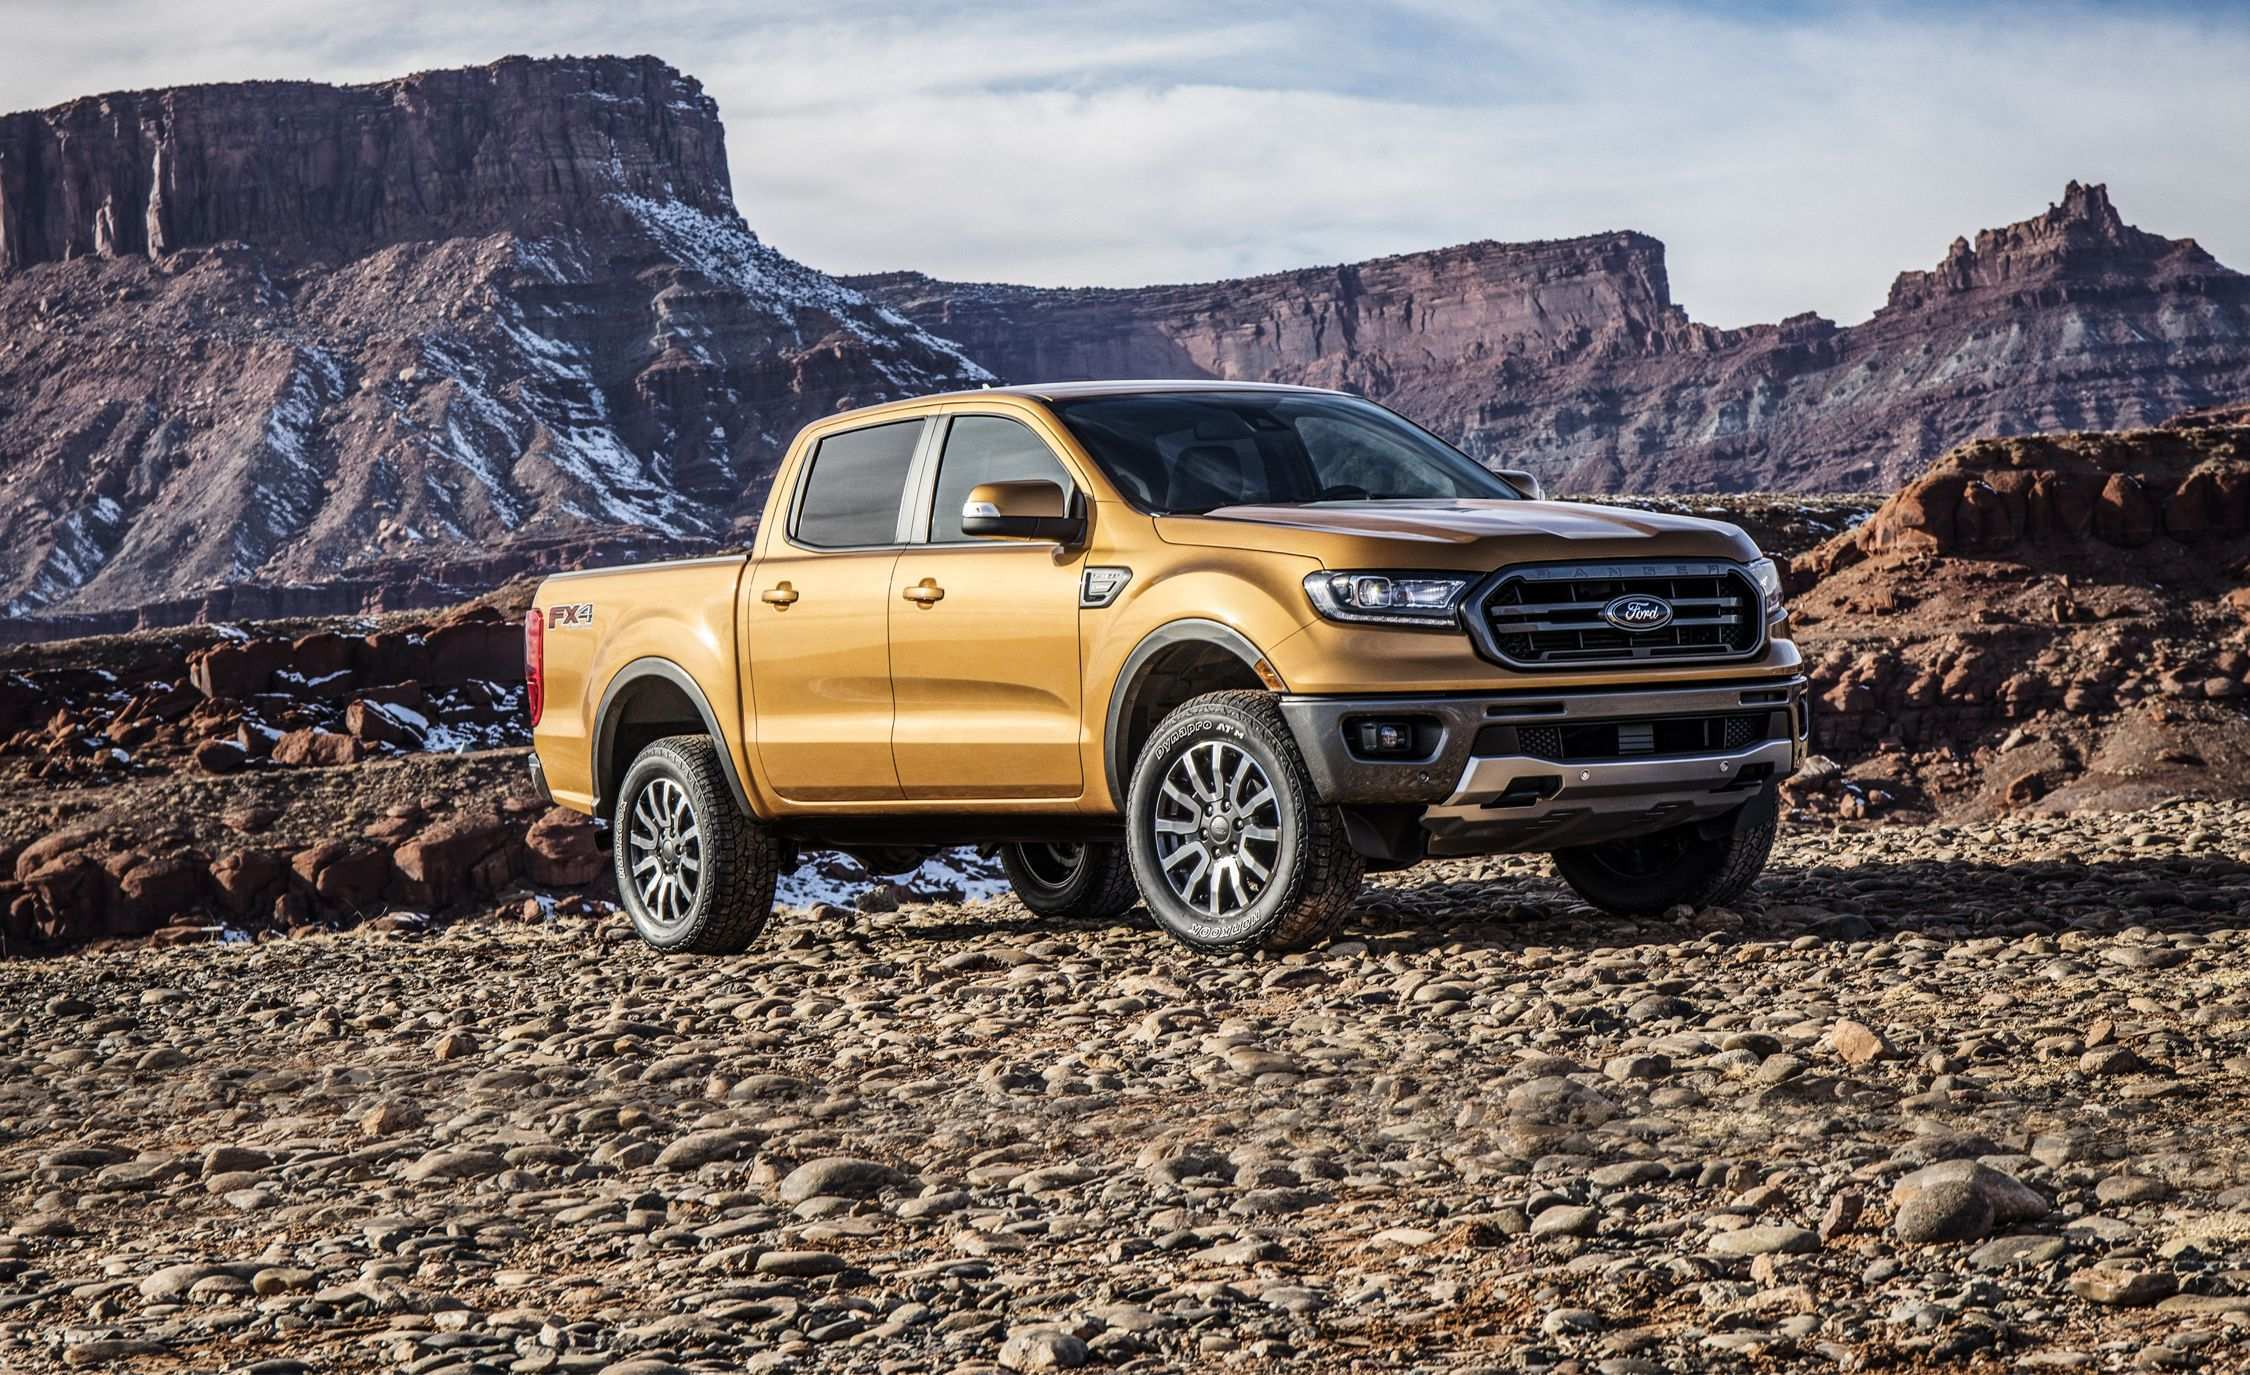 93 Gallery of 2019 Ford Ranger Engine Options Images for 2019 Ford Ranger Engine Options